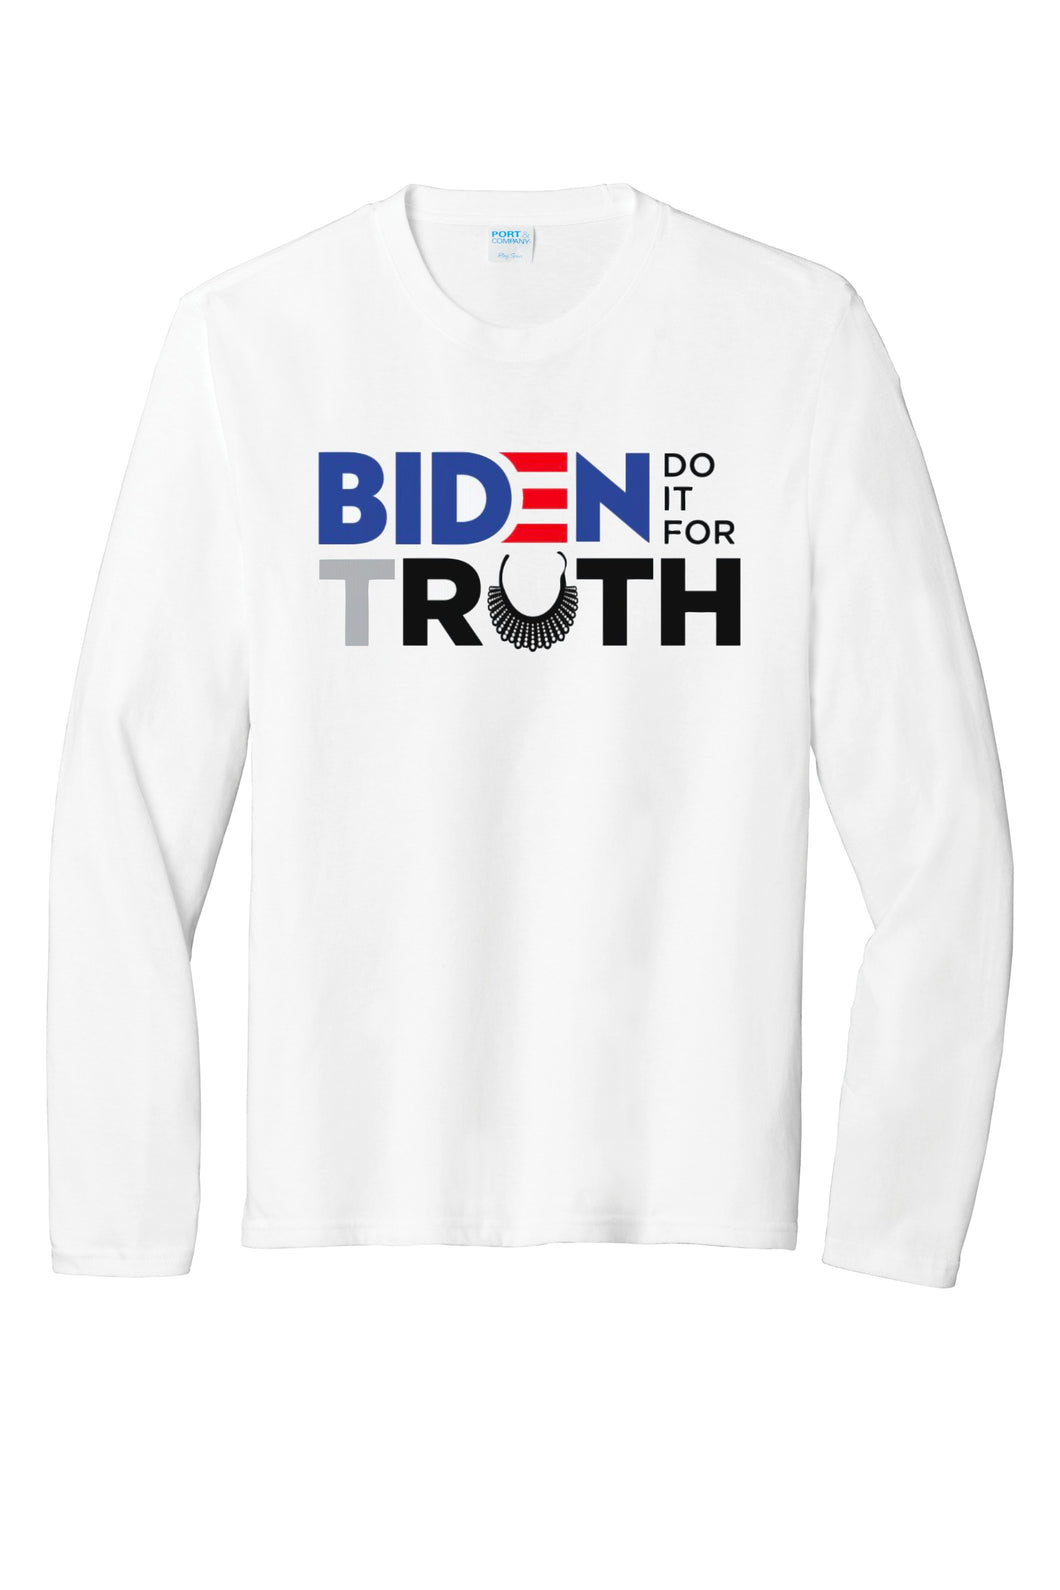 Biden (T)Ruth Long Sleeve T-Shirt